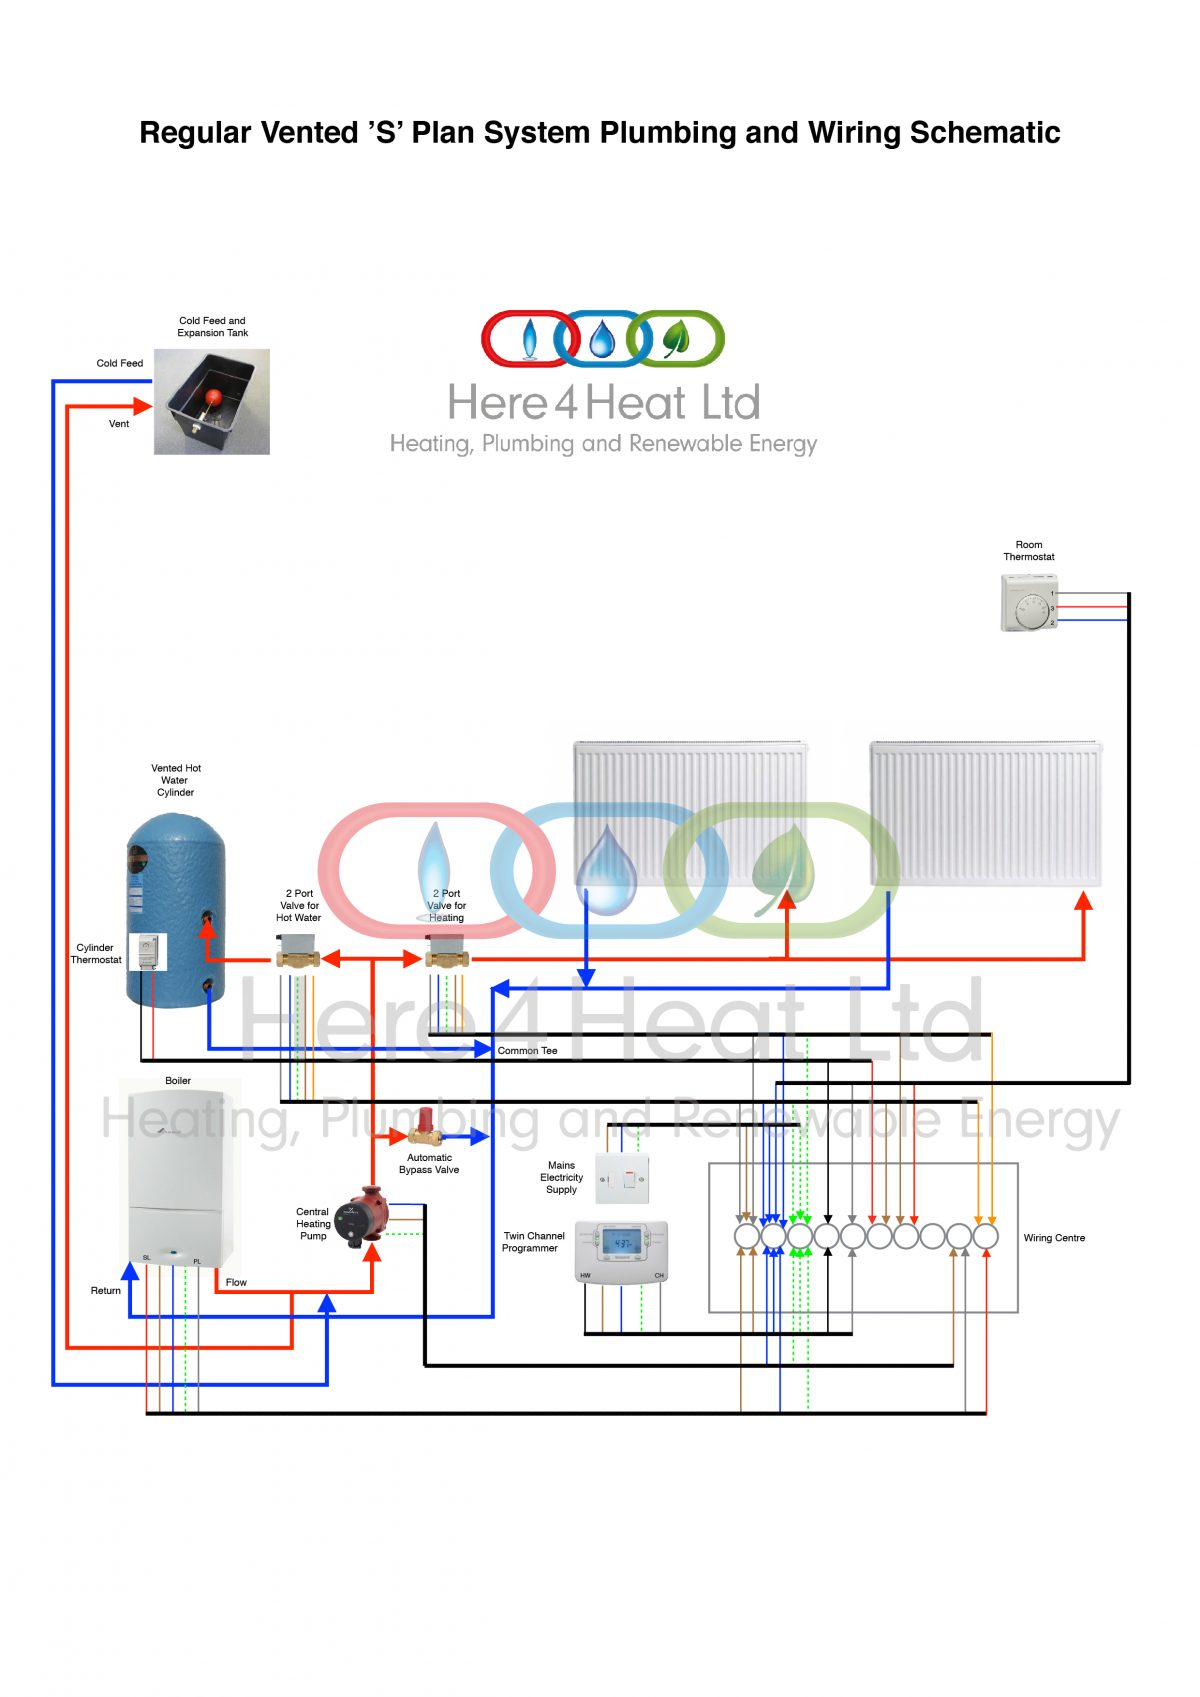 https://here4heat.com/wp-content/uploads/2018/06/Here-4-Heat-Regular-Vented-S-Plan-Plumbing-and-Wiring-Schematic-Diagram-01-1200x1697.jpg